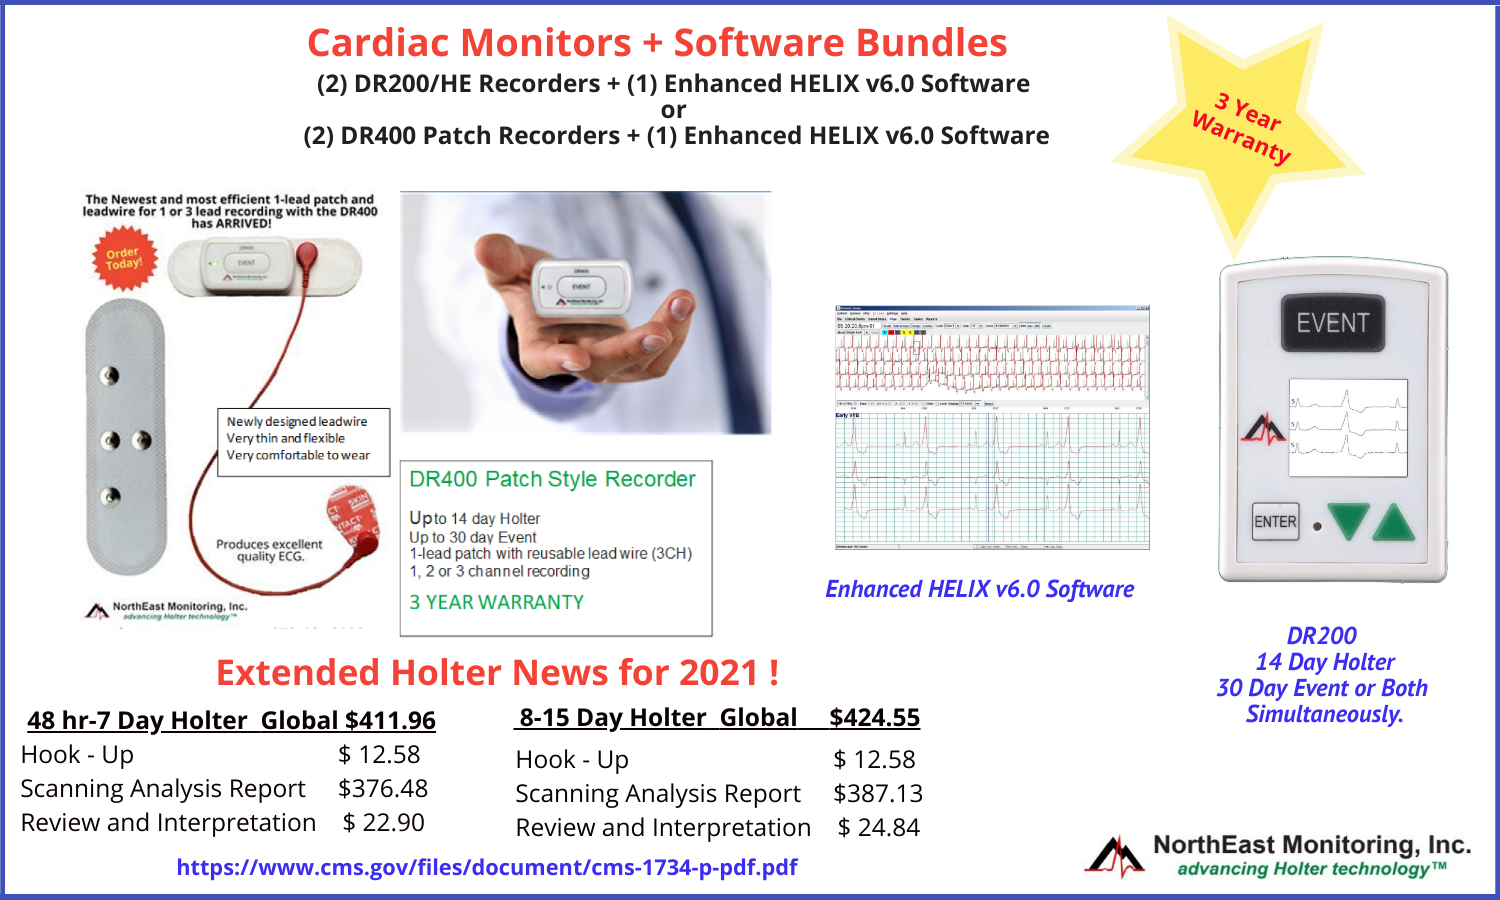 nemon-recorders-software-bundles-2020-3-.png